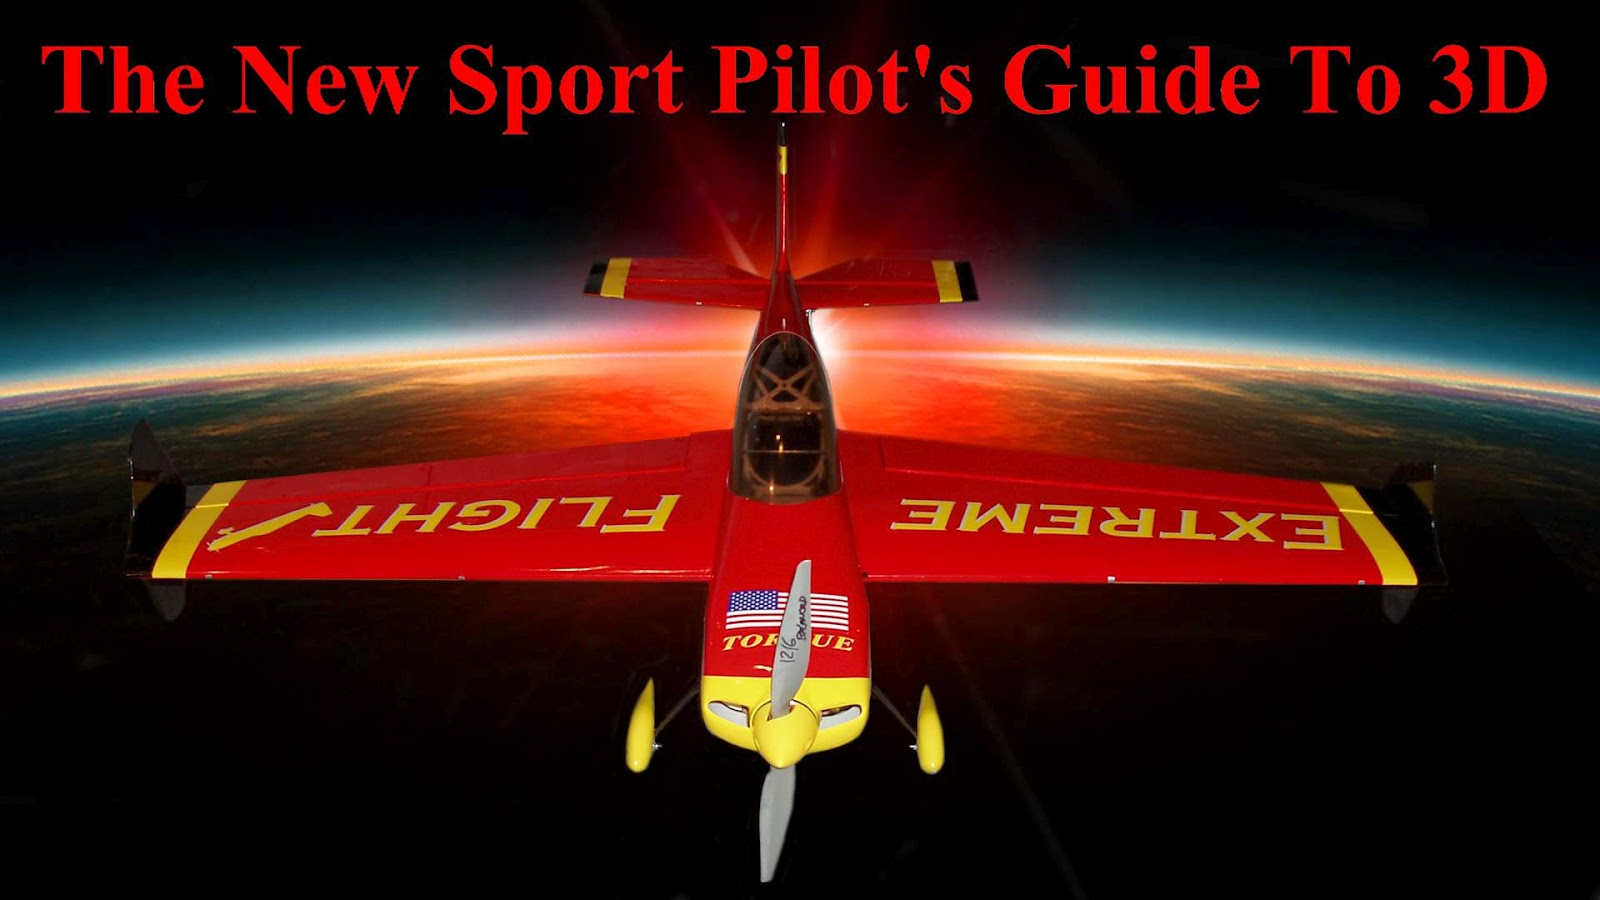 Extreme Aviation: The New Sport Pilot's Guide To 3D